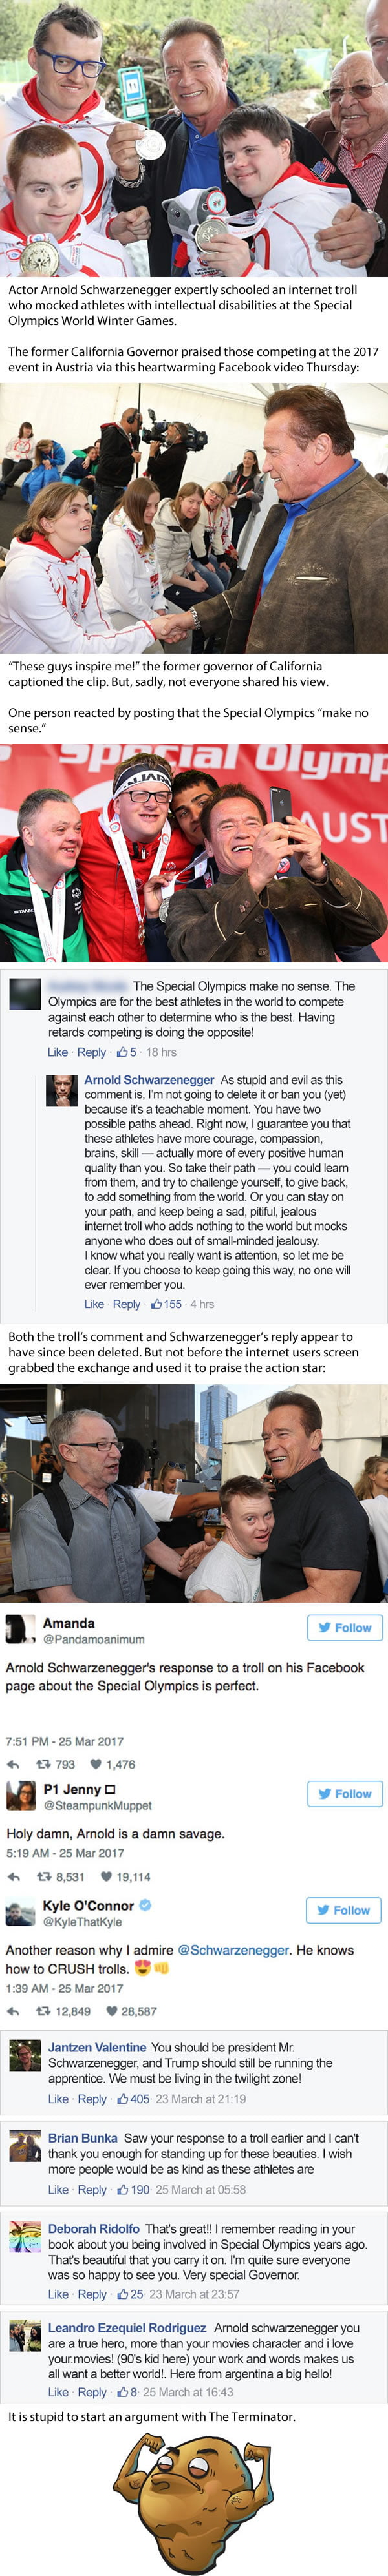 Arnold Schwarzenegger Shuts Down Troll For Mocking Special Olympics